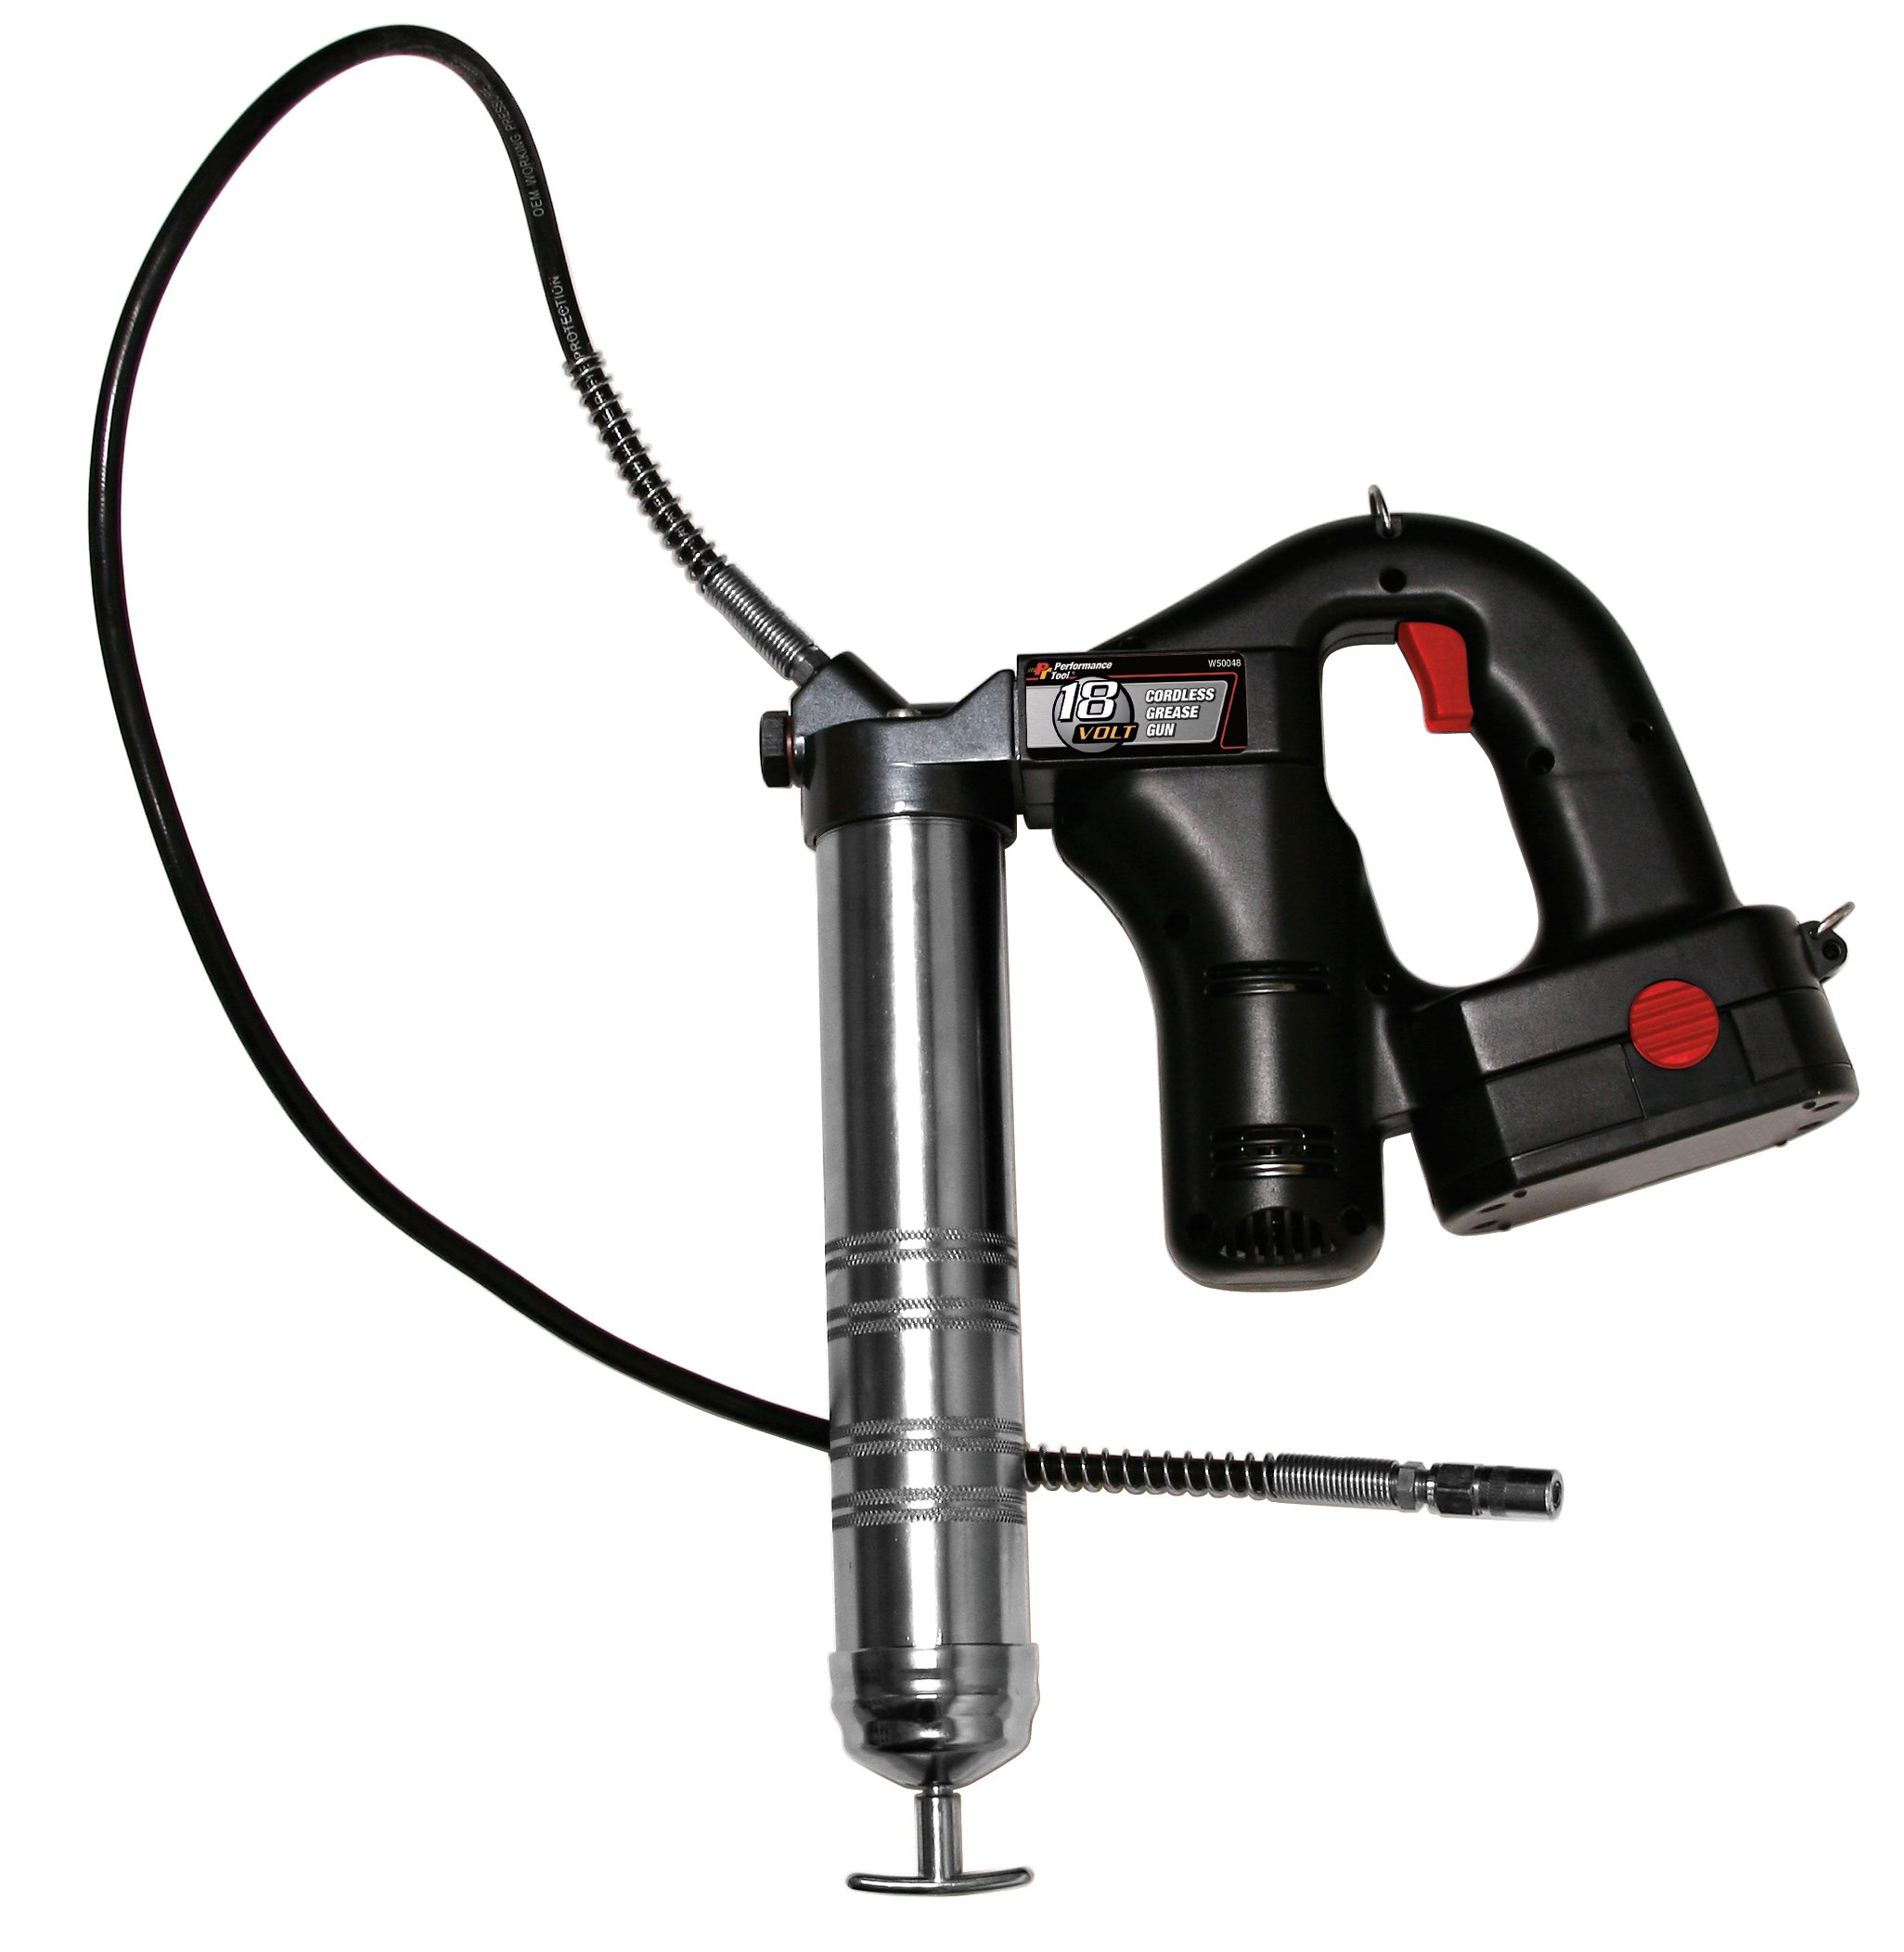 Performance Tool W50048 18-volt Cordless Grease Gun by Performance Tool (Image #5)